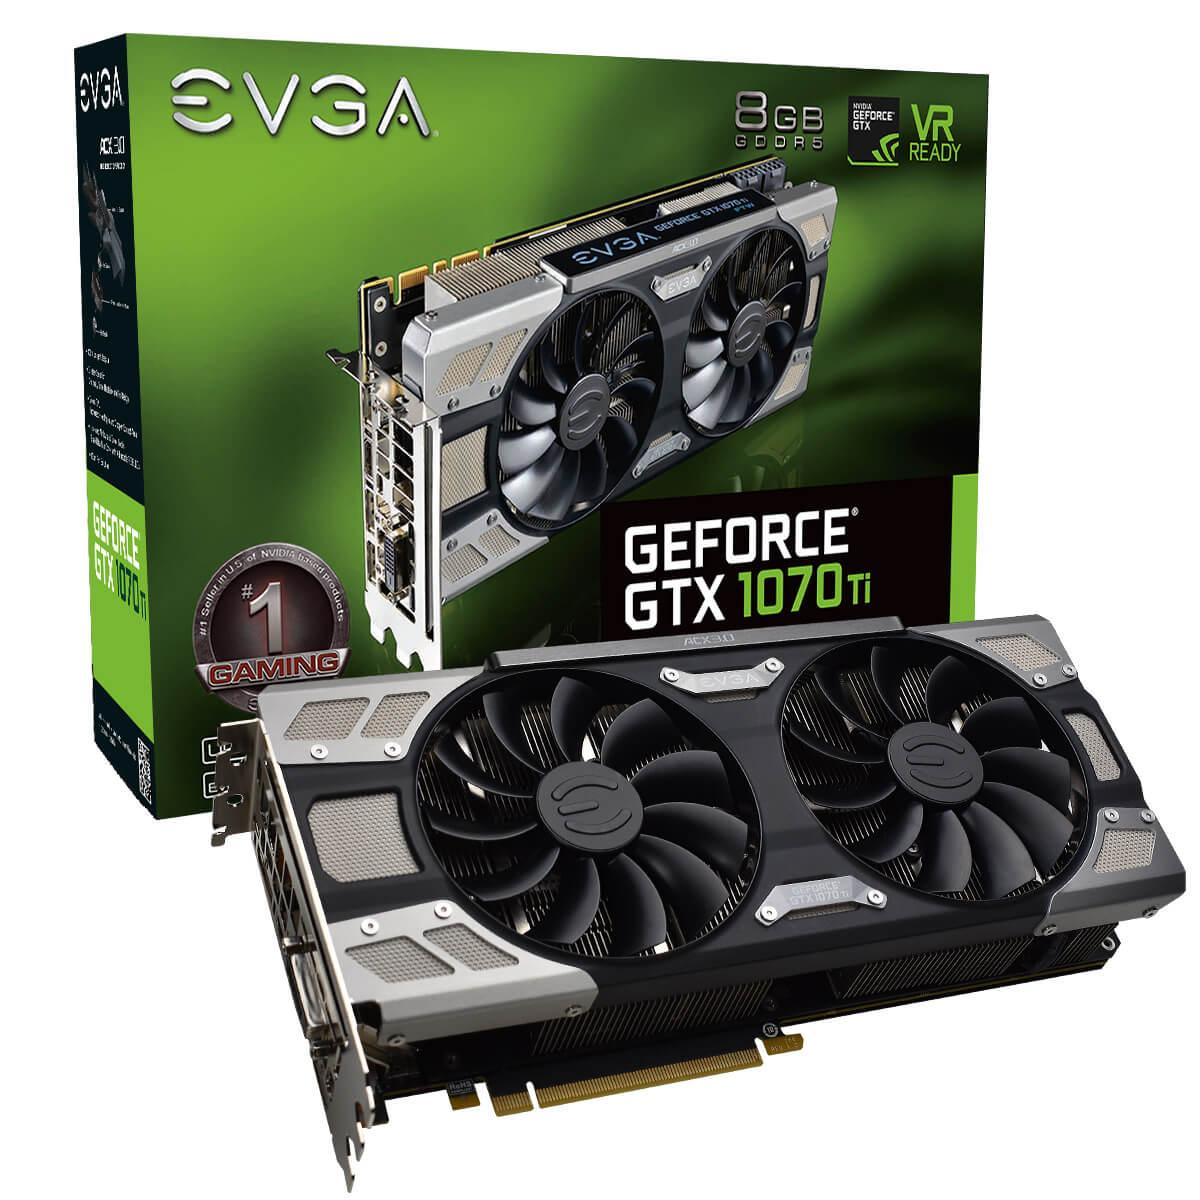 Видео карта EVGA GeForce GTX 1070 Ti FTW ULTRA SILENT GAMING ACX 3.0 8GB GDDR5 256 bit